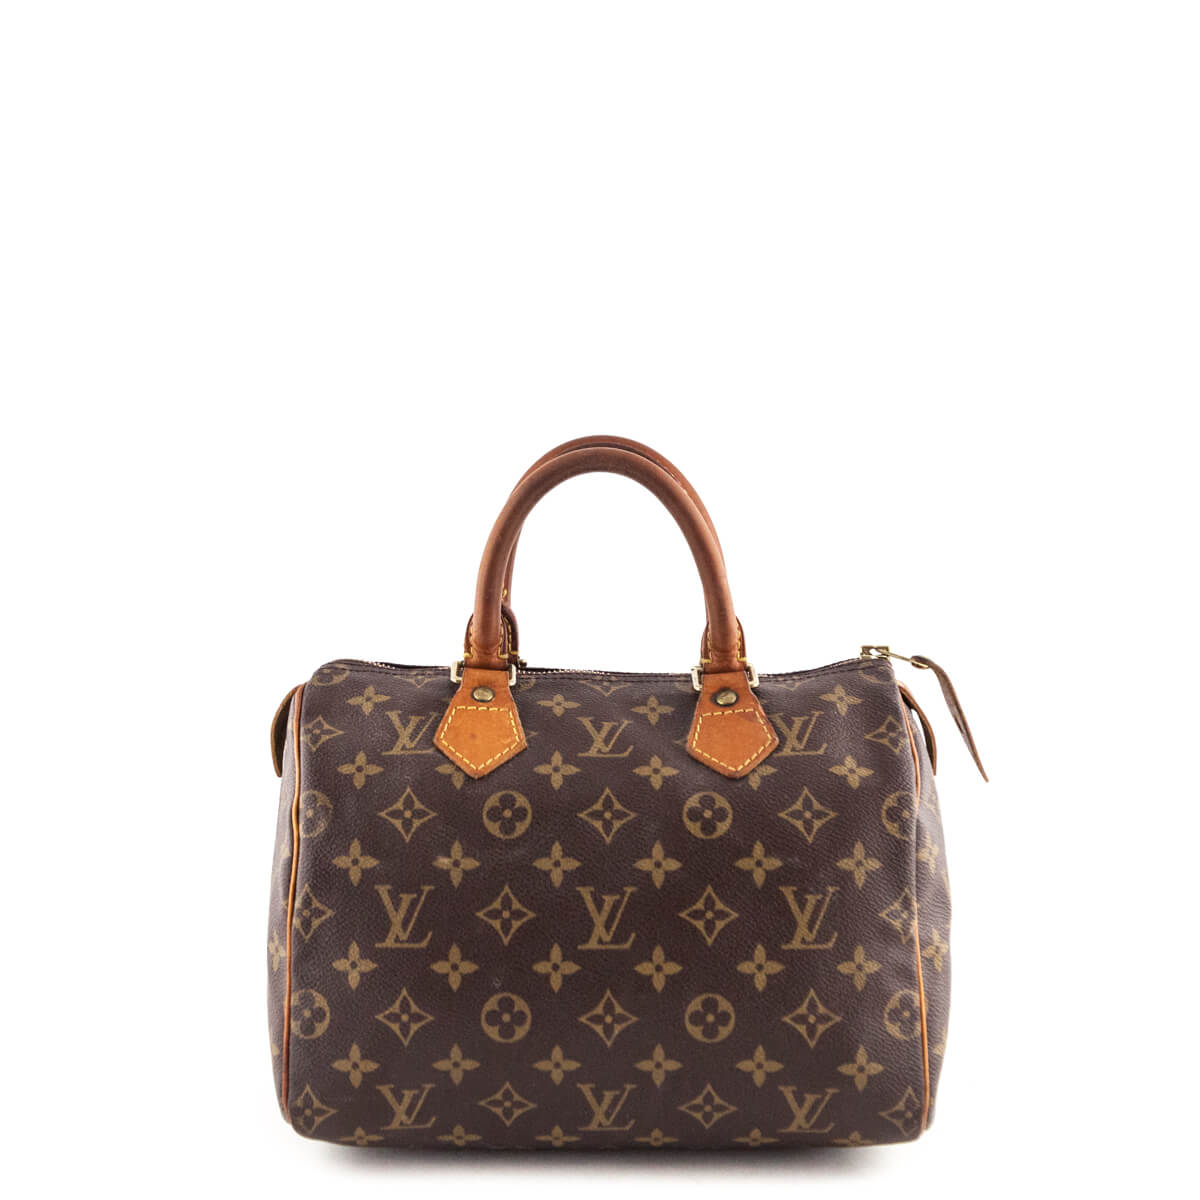 6c242bfedf2d Louis Vuitton Monogram Speedy 25 - LOVE that BAG - Preowned Authentic  Designer Handbags ...